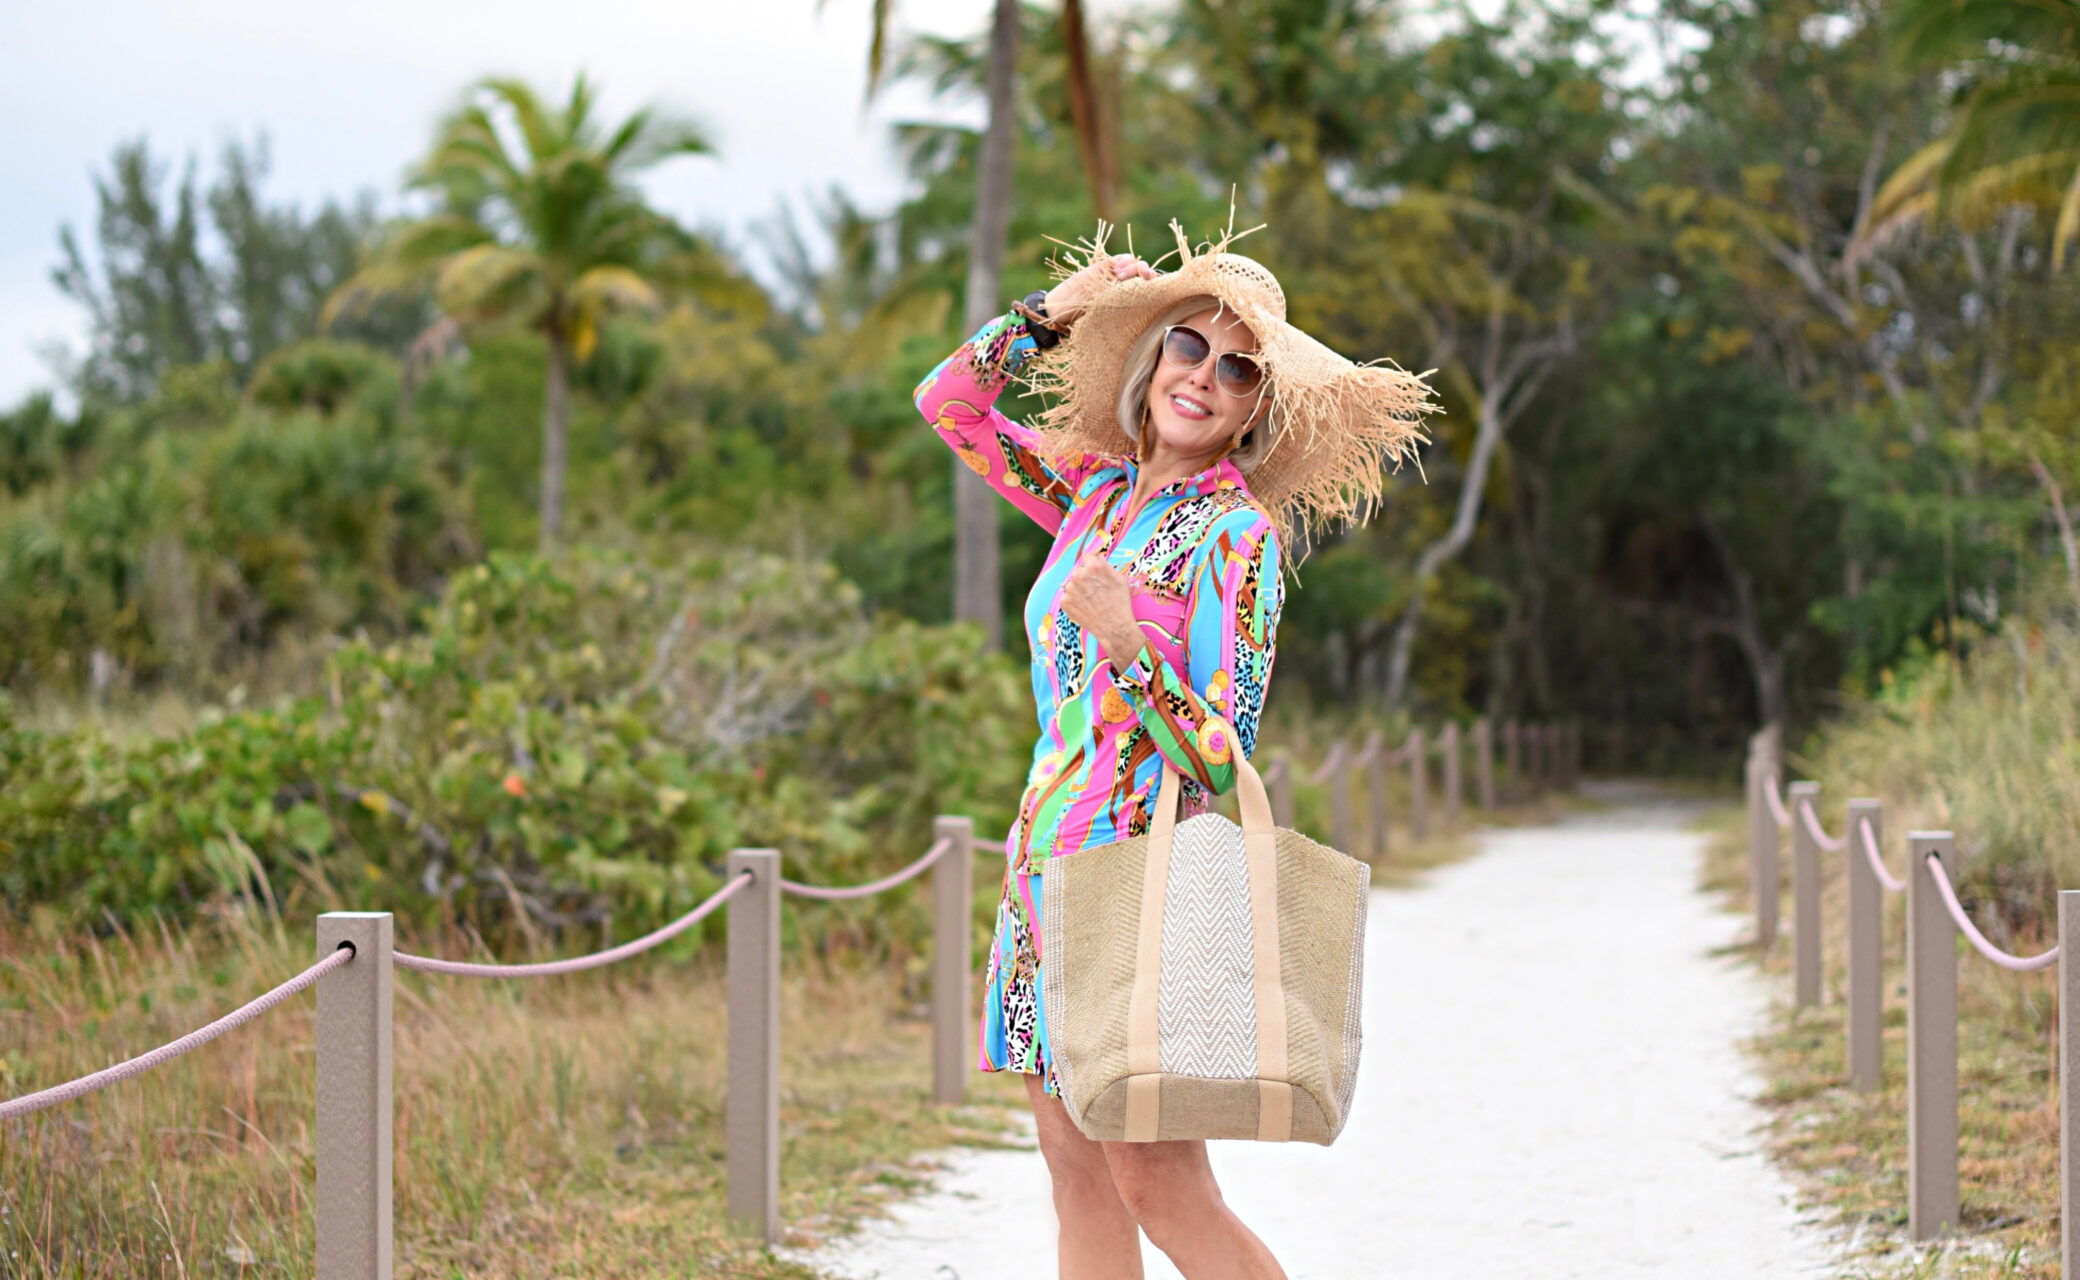 Sheree Frede of the SheSheShow multi-colored spf longsleeve top and skirt, big straw hat, straw tote, beach